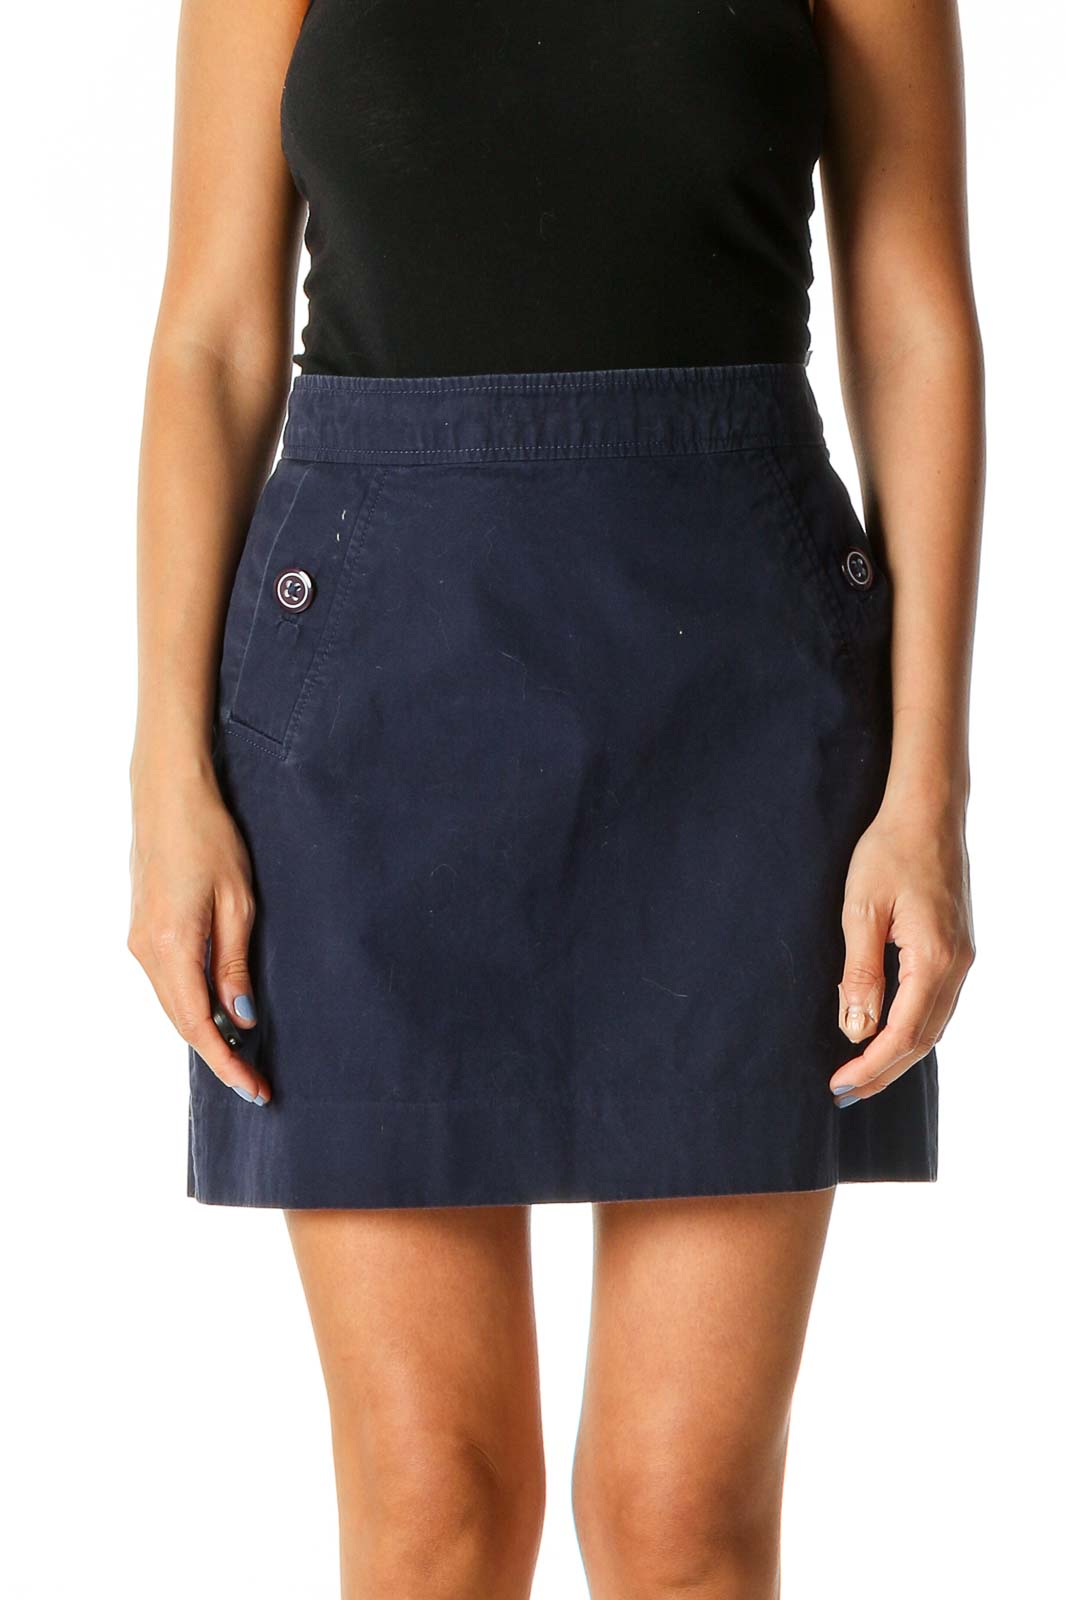 Blue Solid Chic A-Line Skirt Front